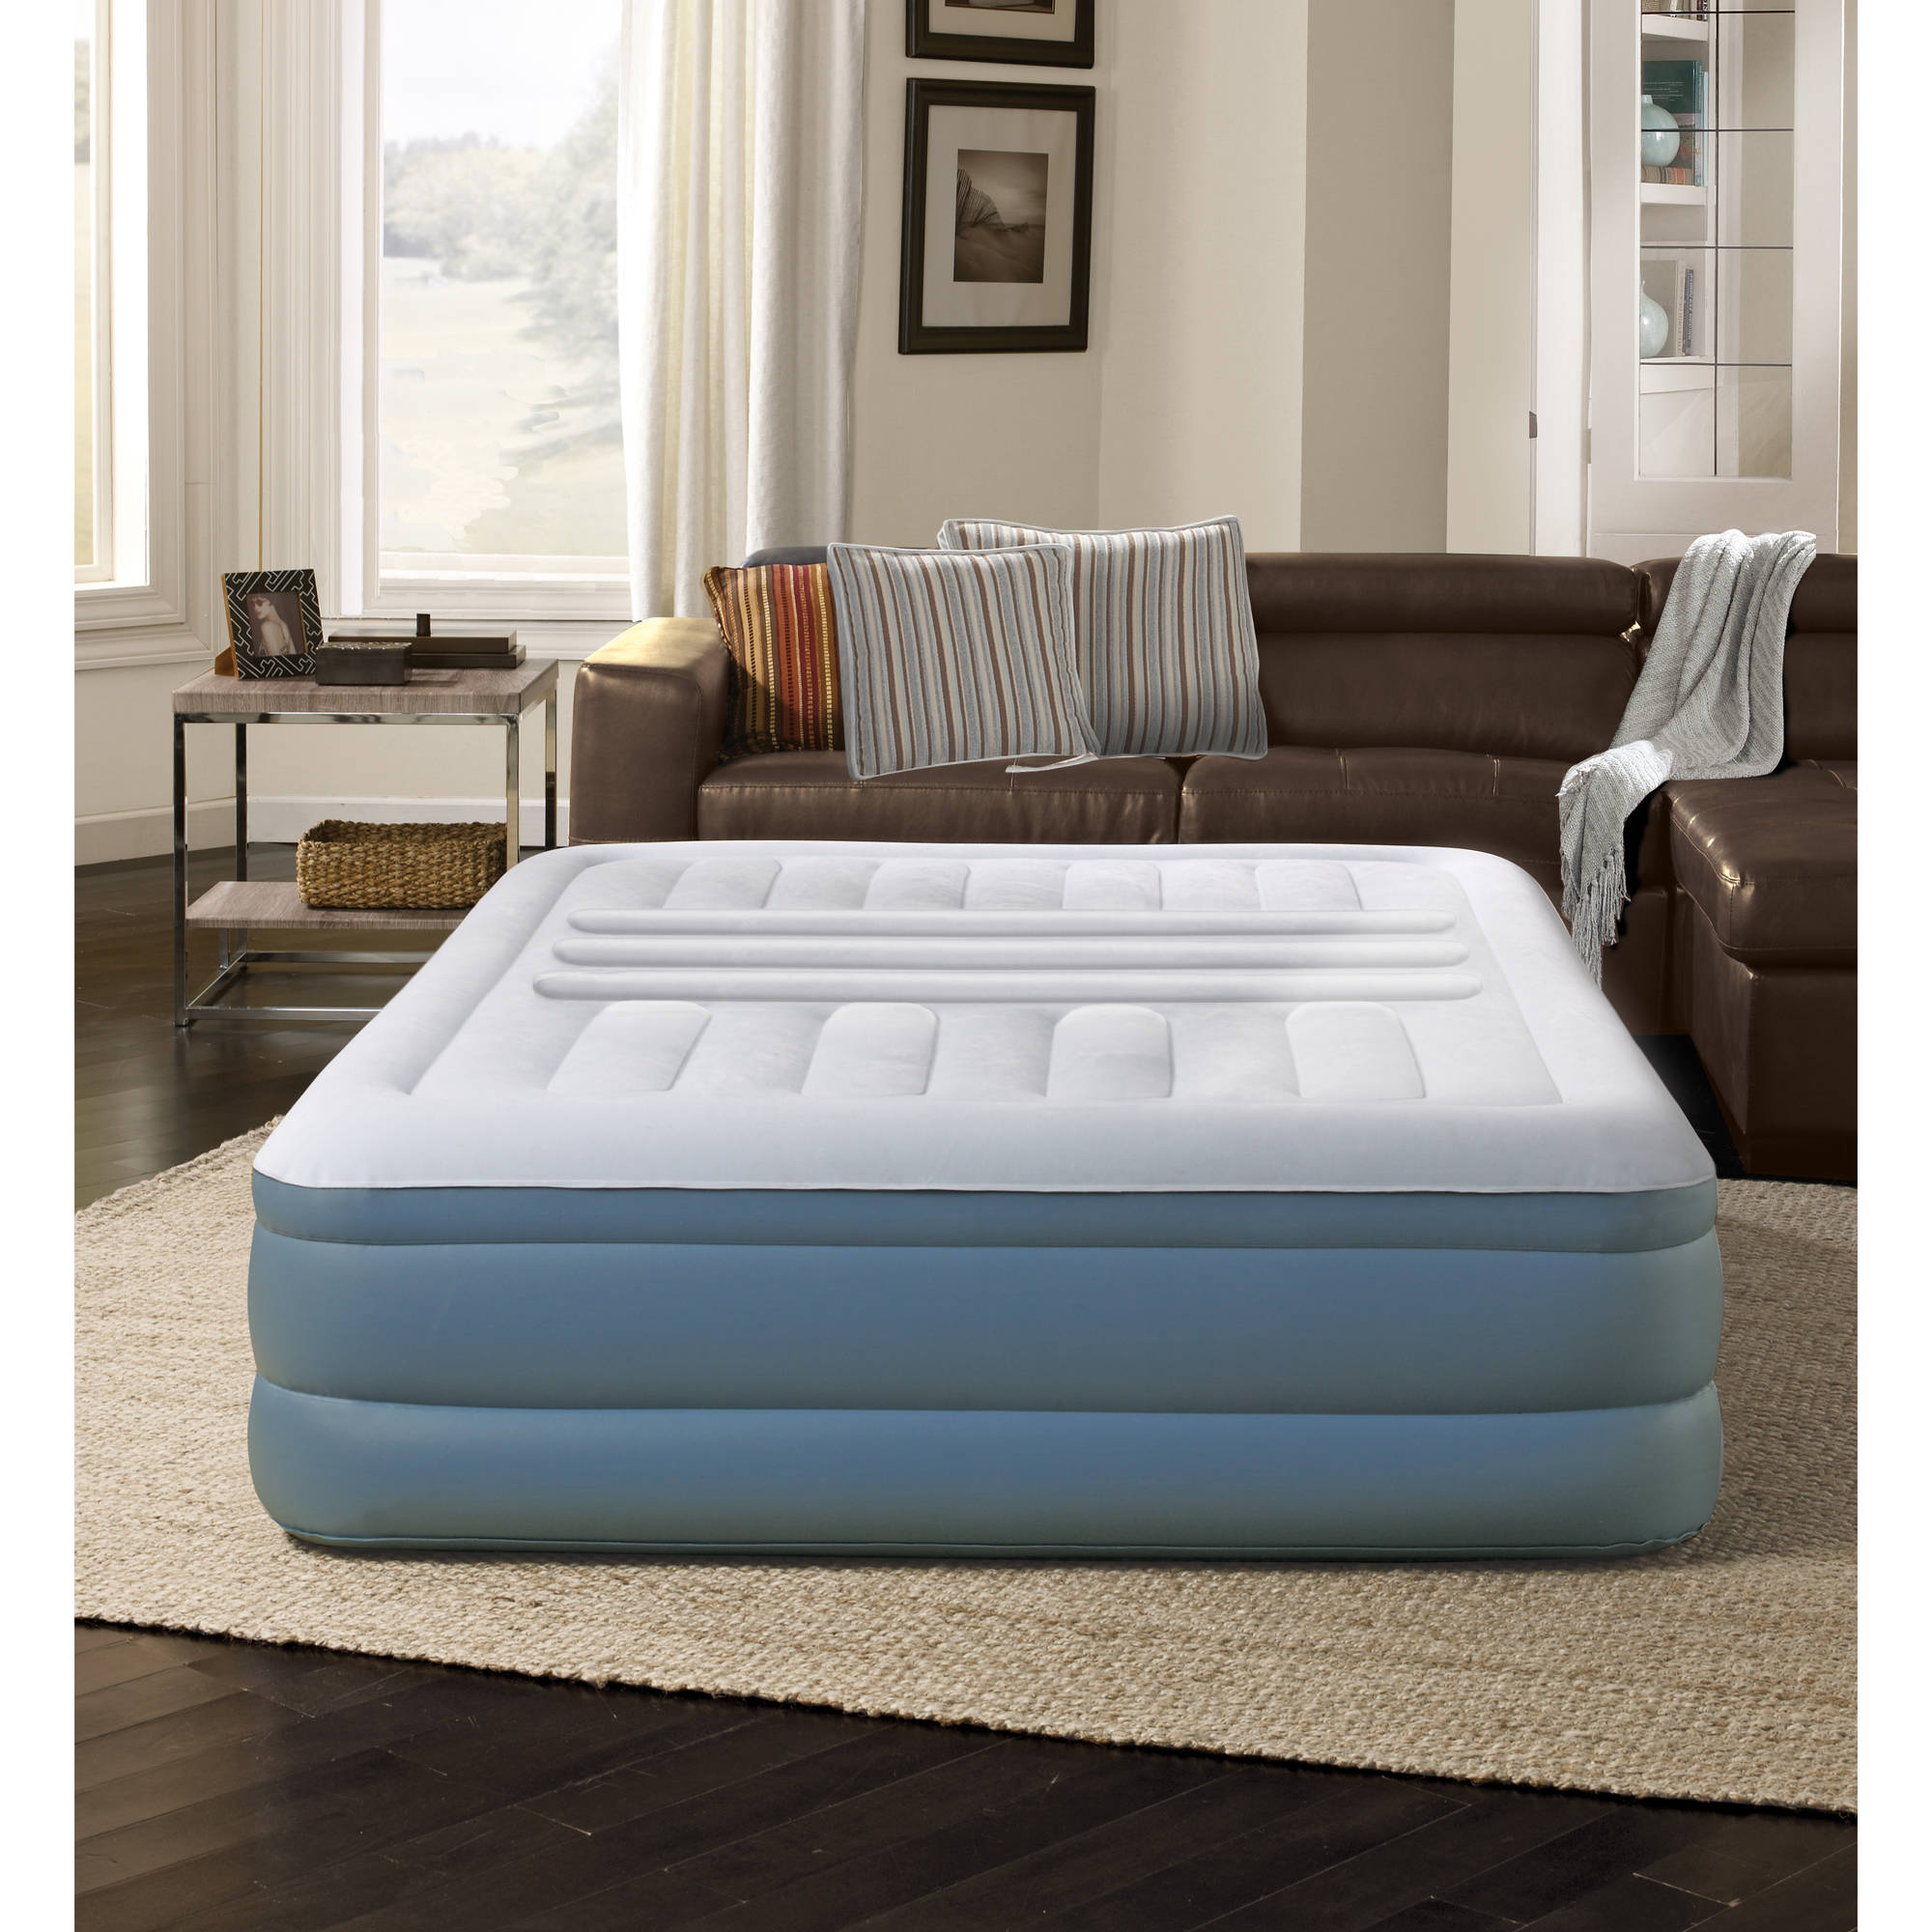 bedding aerobed and south air serta headboard uk intex pure fiore trendy mini with home white the headboards full shore frame queen size vito target mattress depot bed bookcase twin of modern in